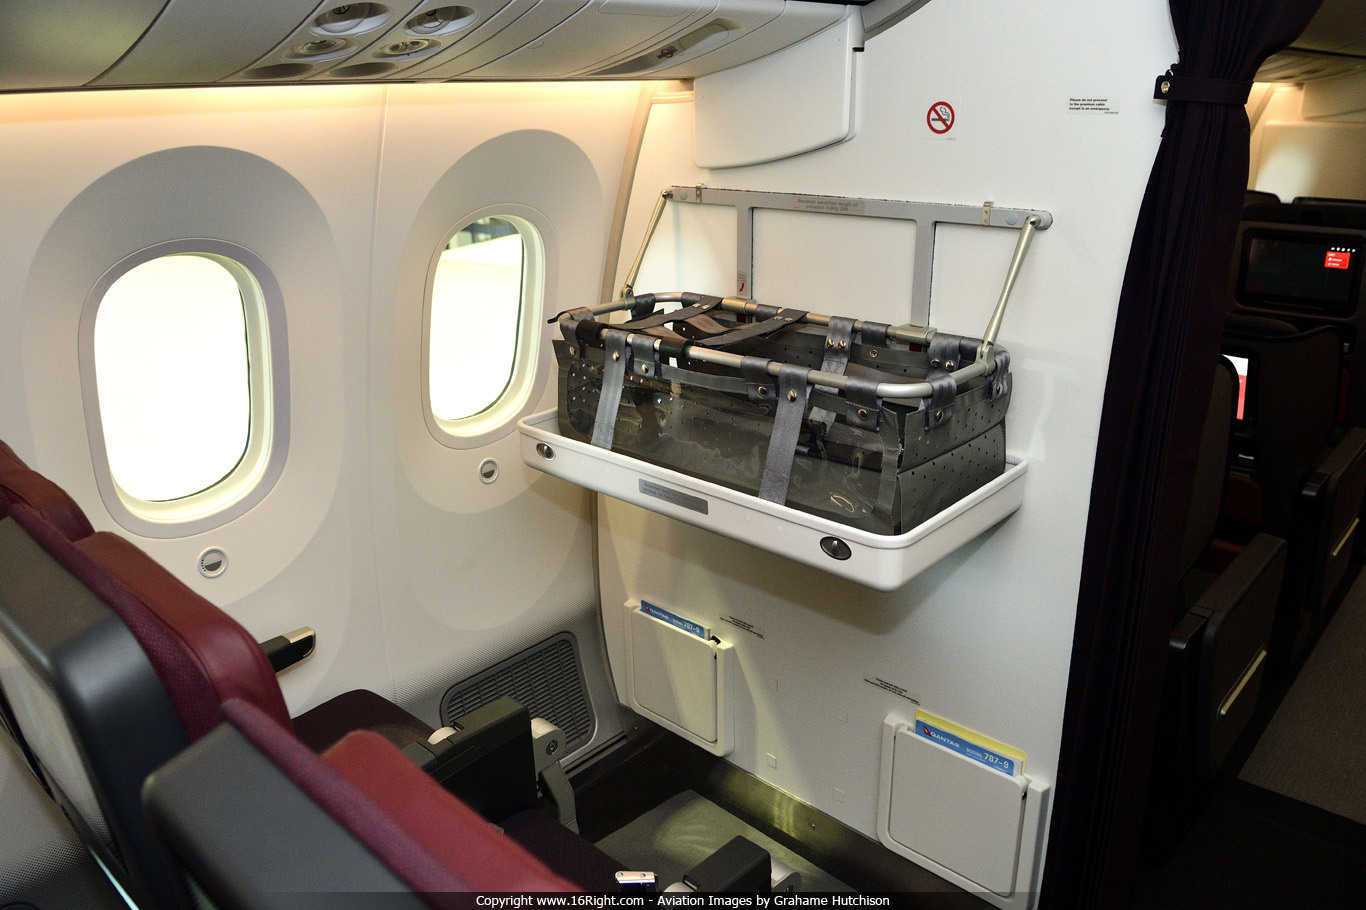 On Board The New Qantas Boeing 787-9 Dreamliner - 16Right News